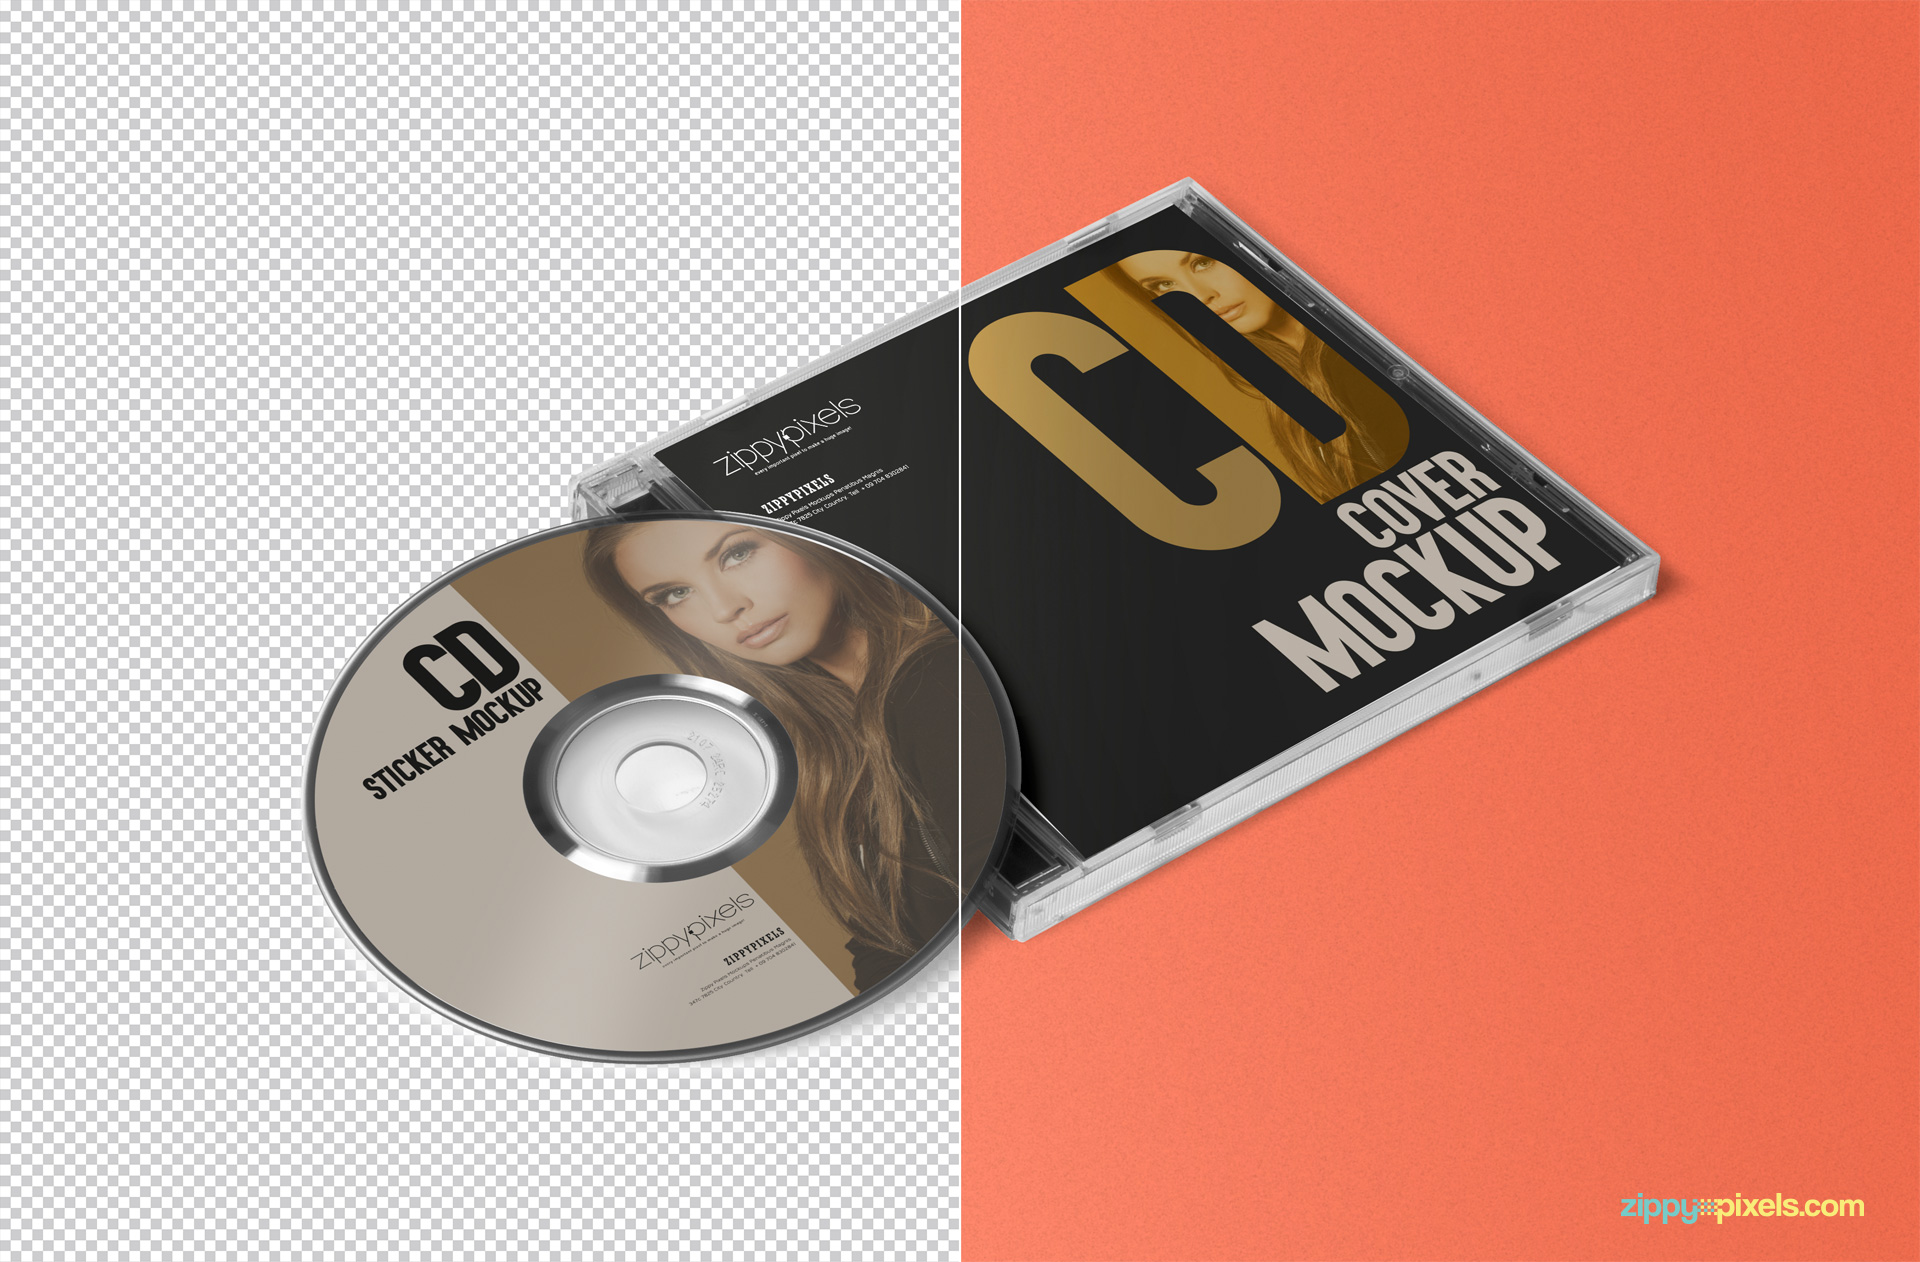 free CD + cover PSD mock-up for Adobe Photoshop